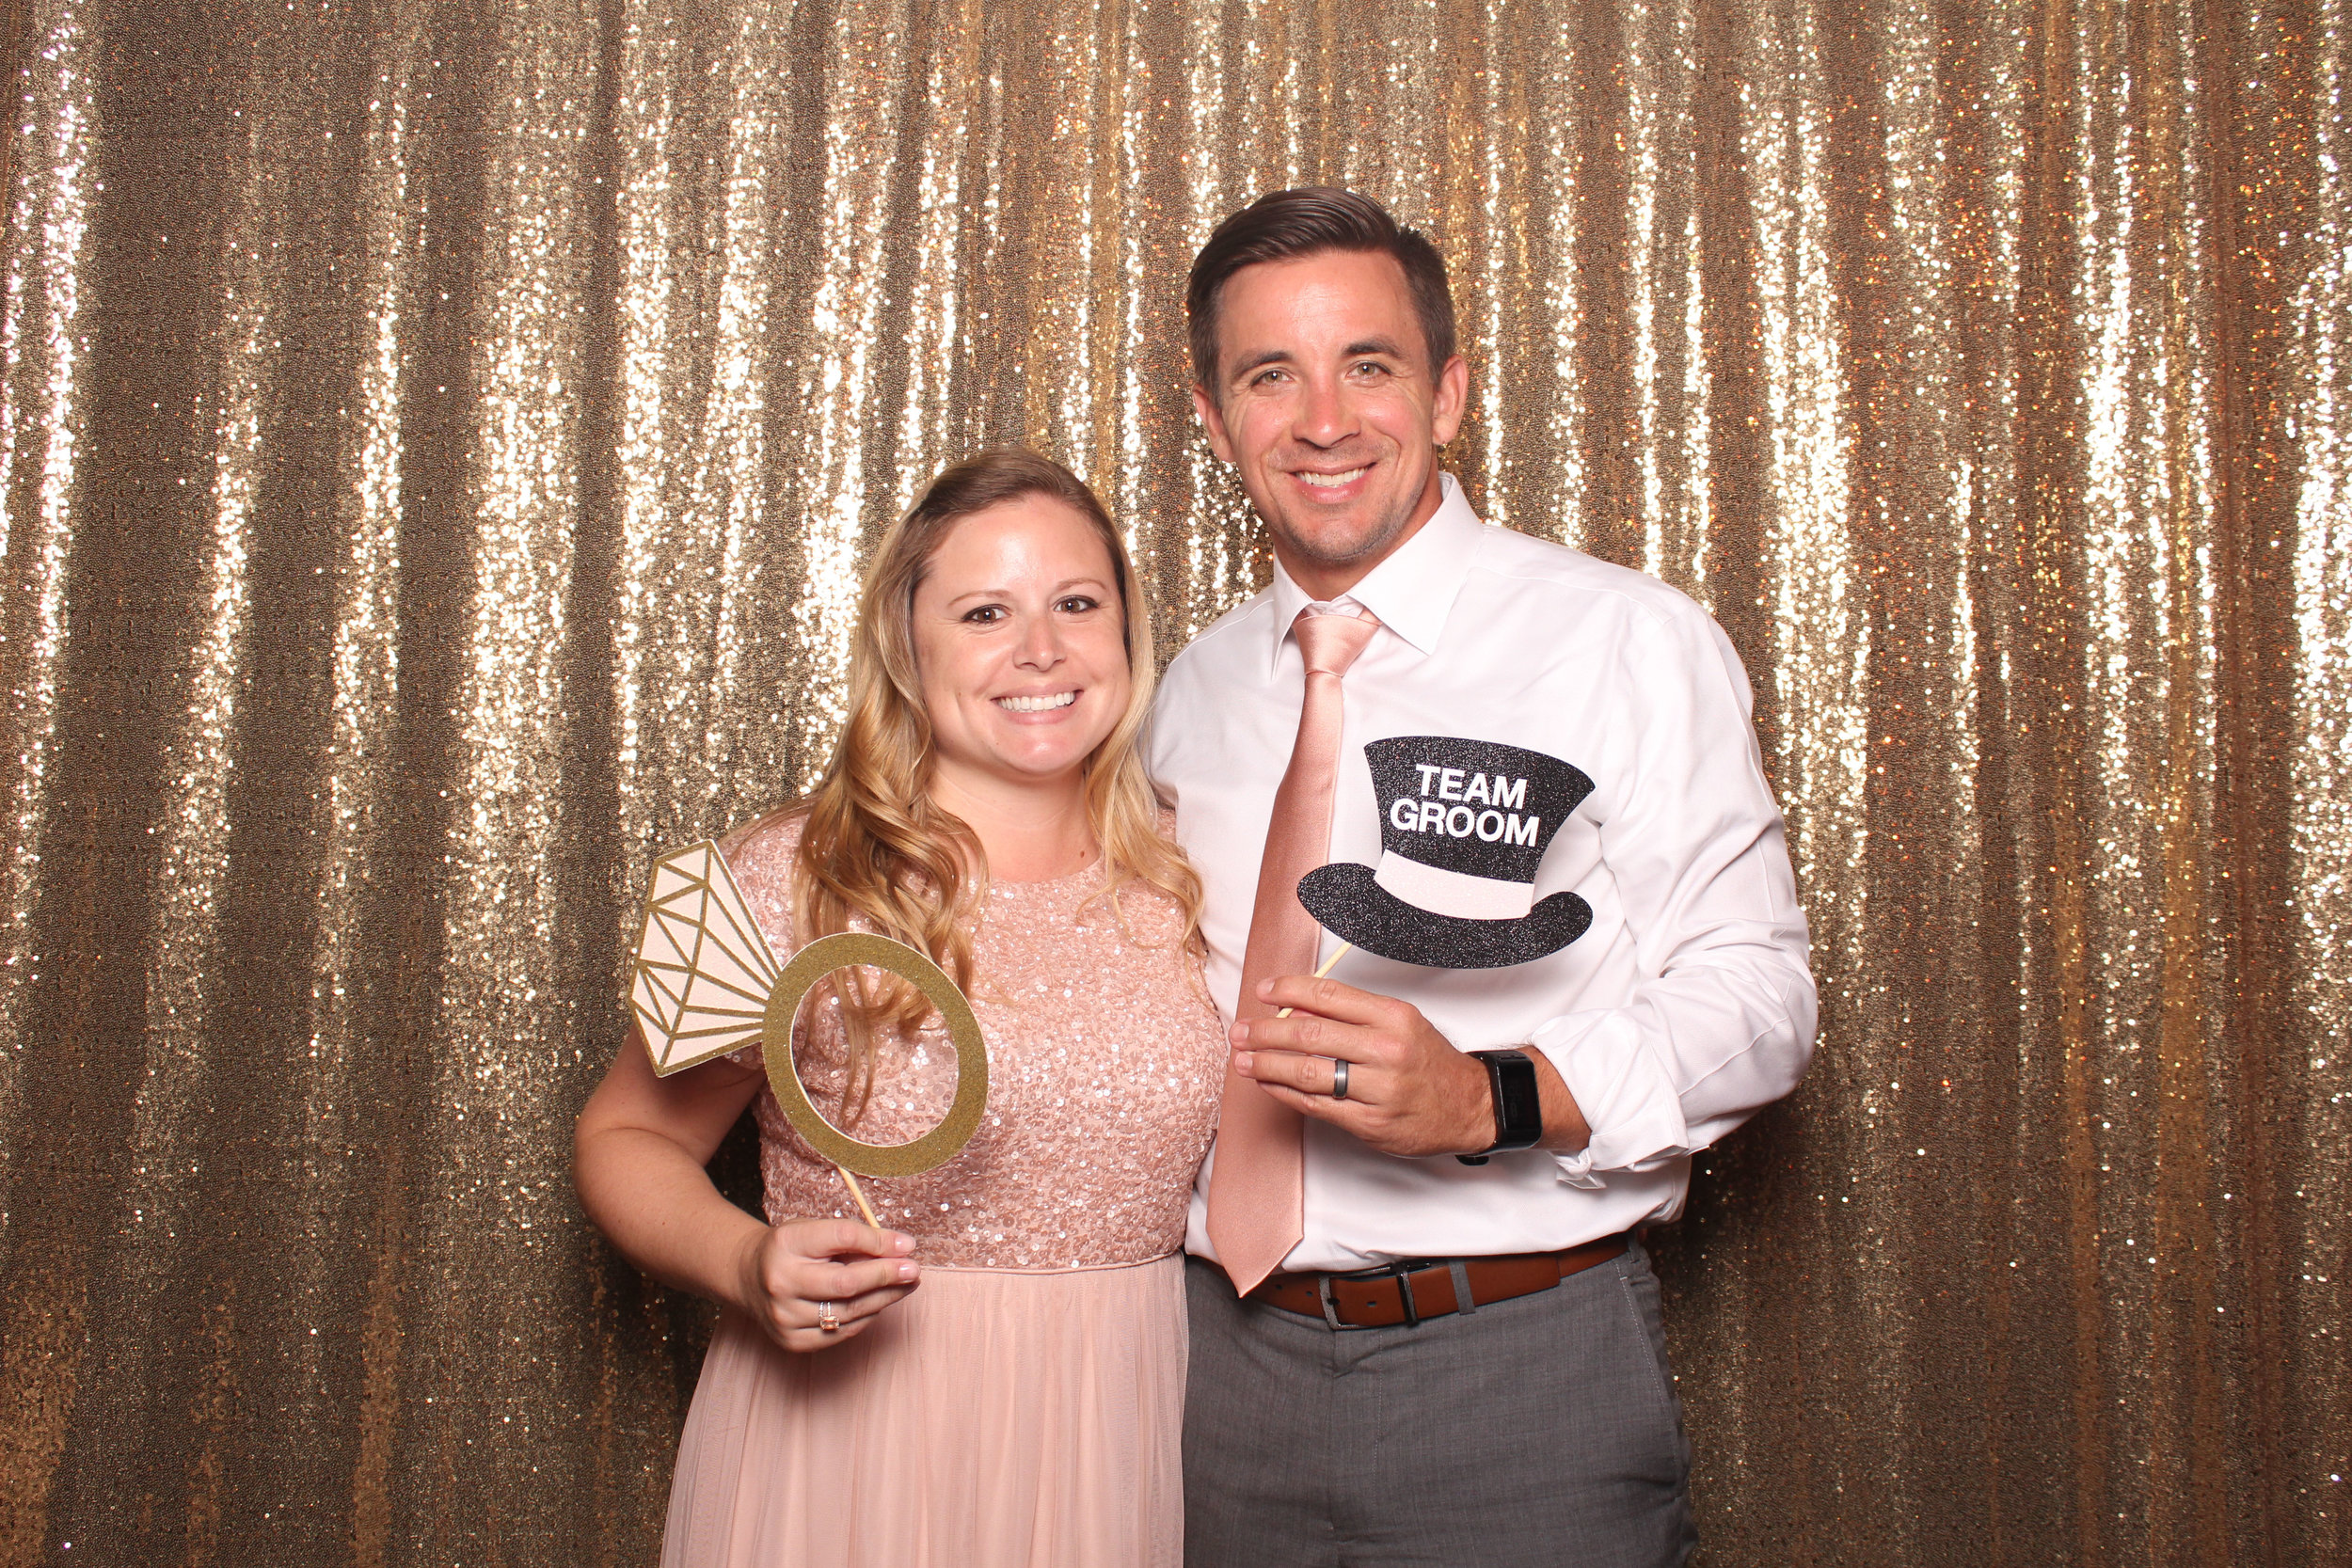 austin photo booth rental 37.jpg